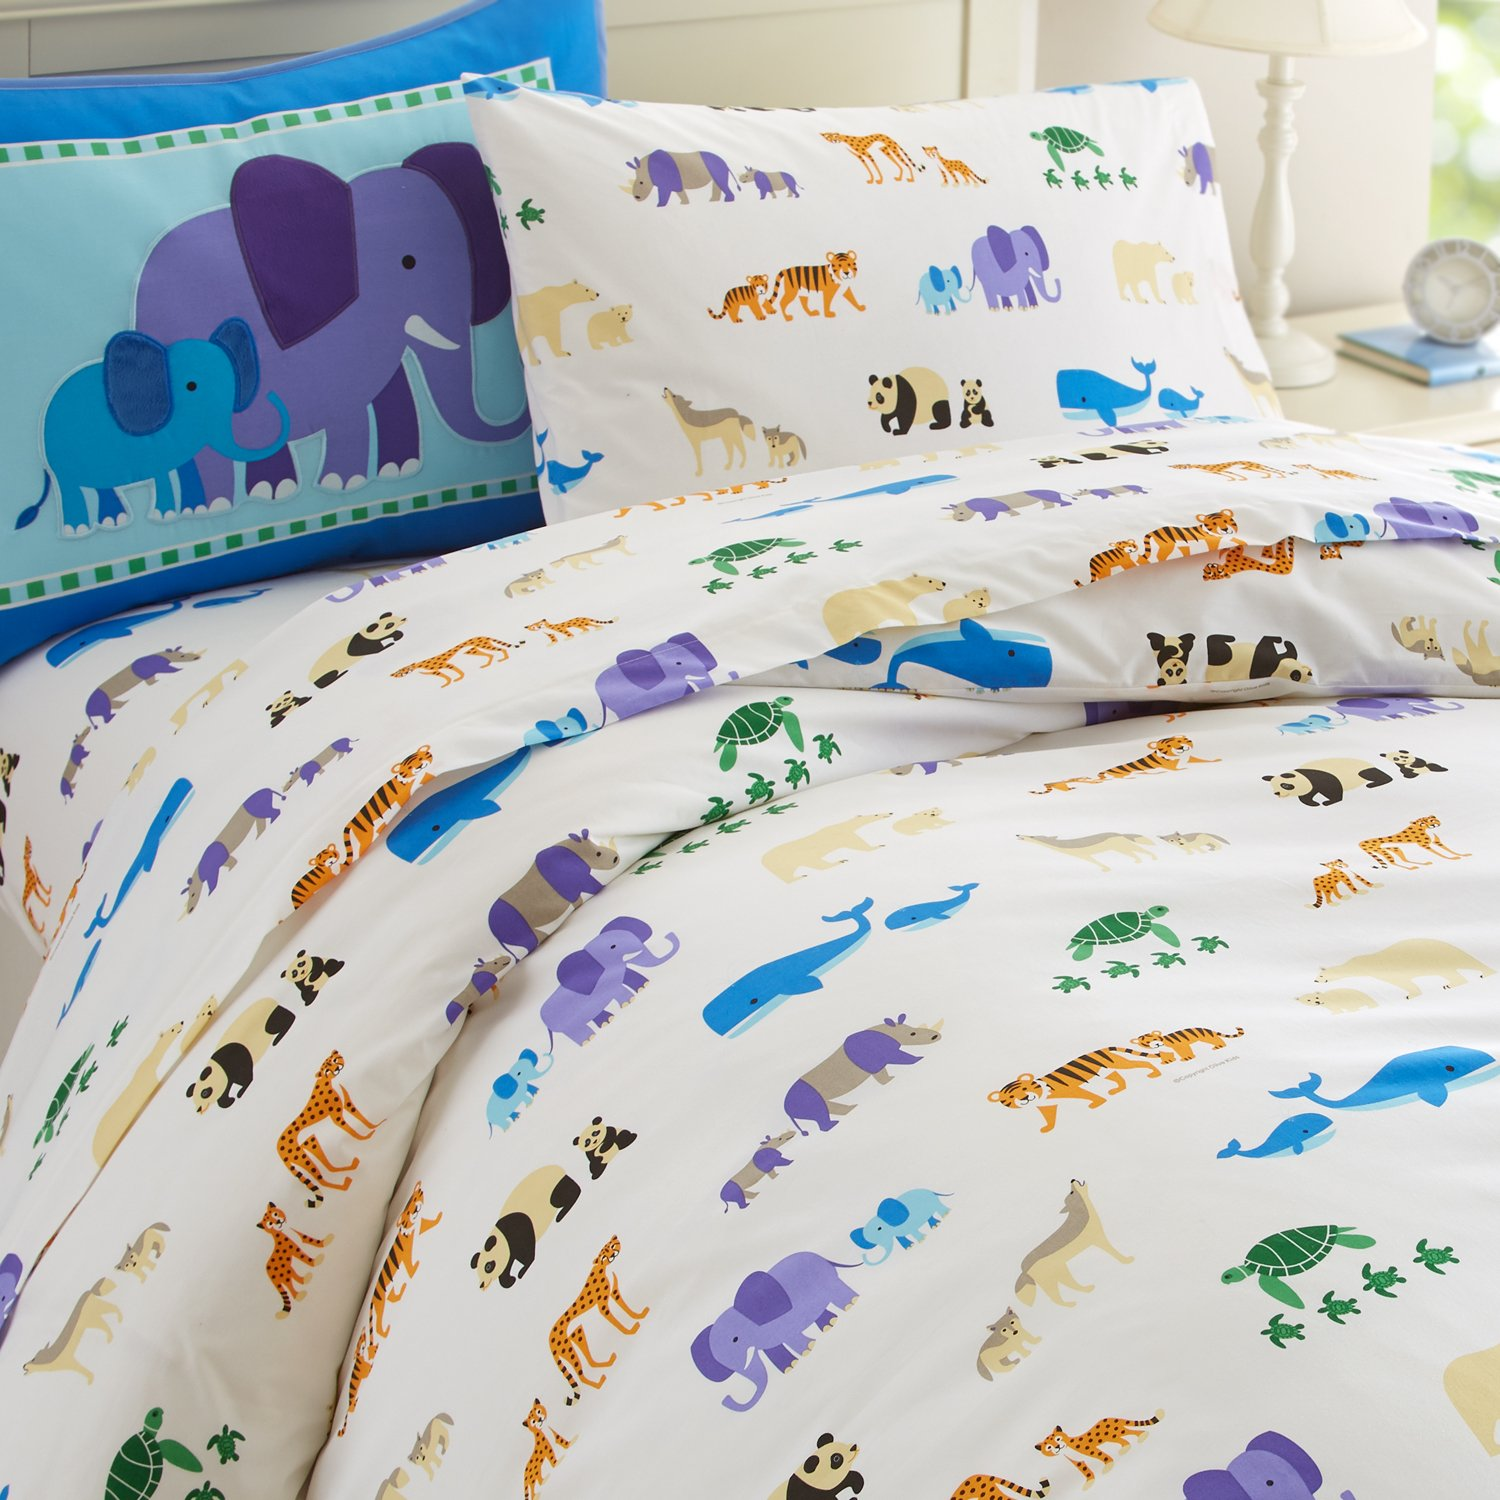 Wildkin Twin Duvet Cover, Super Soft 100% Cotton Twin Duvet Cover with Button Closure, Coordinates with Other Room Décor, Olive Kids Design – Endangered Animals by Wildkin (Image #1)